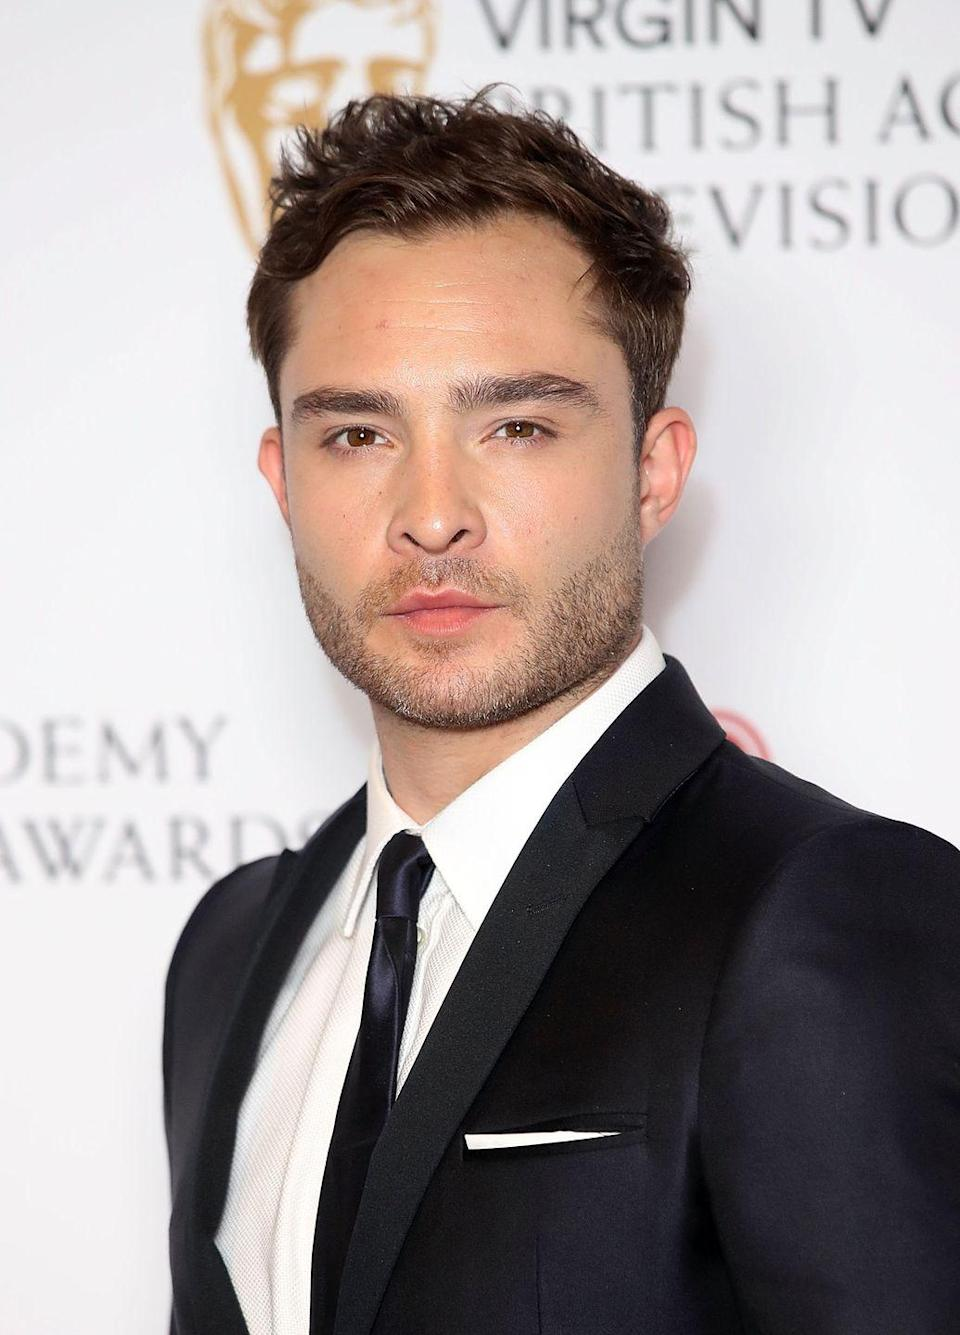 """<p><strong>The role:</strong> <a href=""""http://www.zimbio.com/Fun+Facts+All+Hardcore+'Gossip+Girl'+Fans+Need+to+Know/articles/H3UBxAeyk_f/Ed+Westwick+originally+auditioned+role+Nate"""" rel=""""nofollow noopener"""" target=""""_blank"""" data-ylk=""""slk:Nate Archibald"""" class=""""link rapid-noclick-resp"""">Nate Archibald</a> in <em>Gossip Girl</em> (2007-2012)</p><p><strong>Who *actually* played it:</strong> Chace Crawford </p><p><strong>The role they played instead: </strong>Chuck Bass</p><p>Creators Josh Schwartz and Stephanie Savage encouraged Westwick to read for Chuck Bass after not landing the part of Nate Archibald. </p>"""